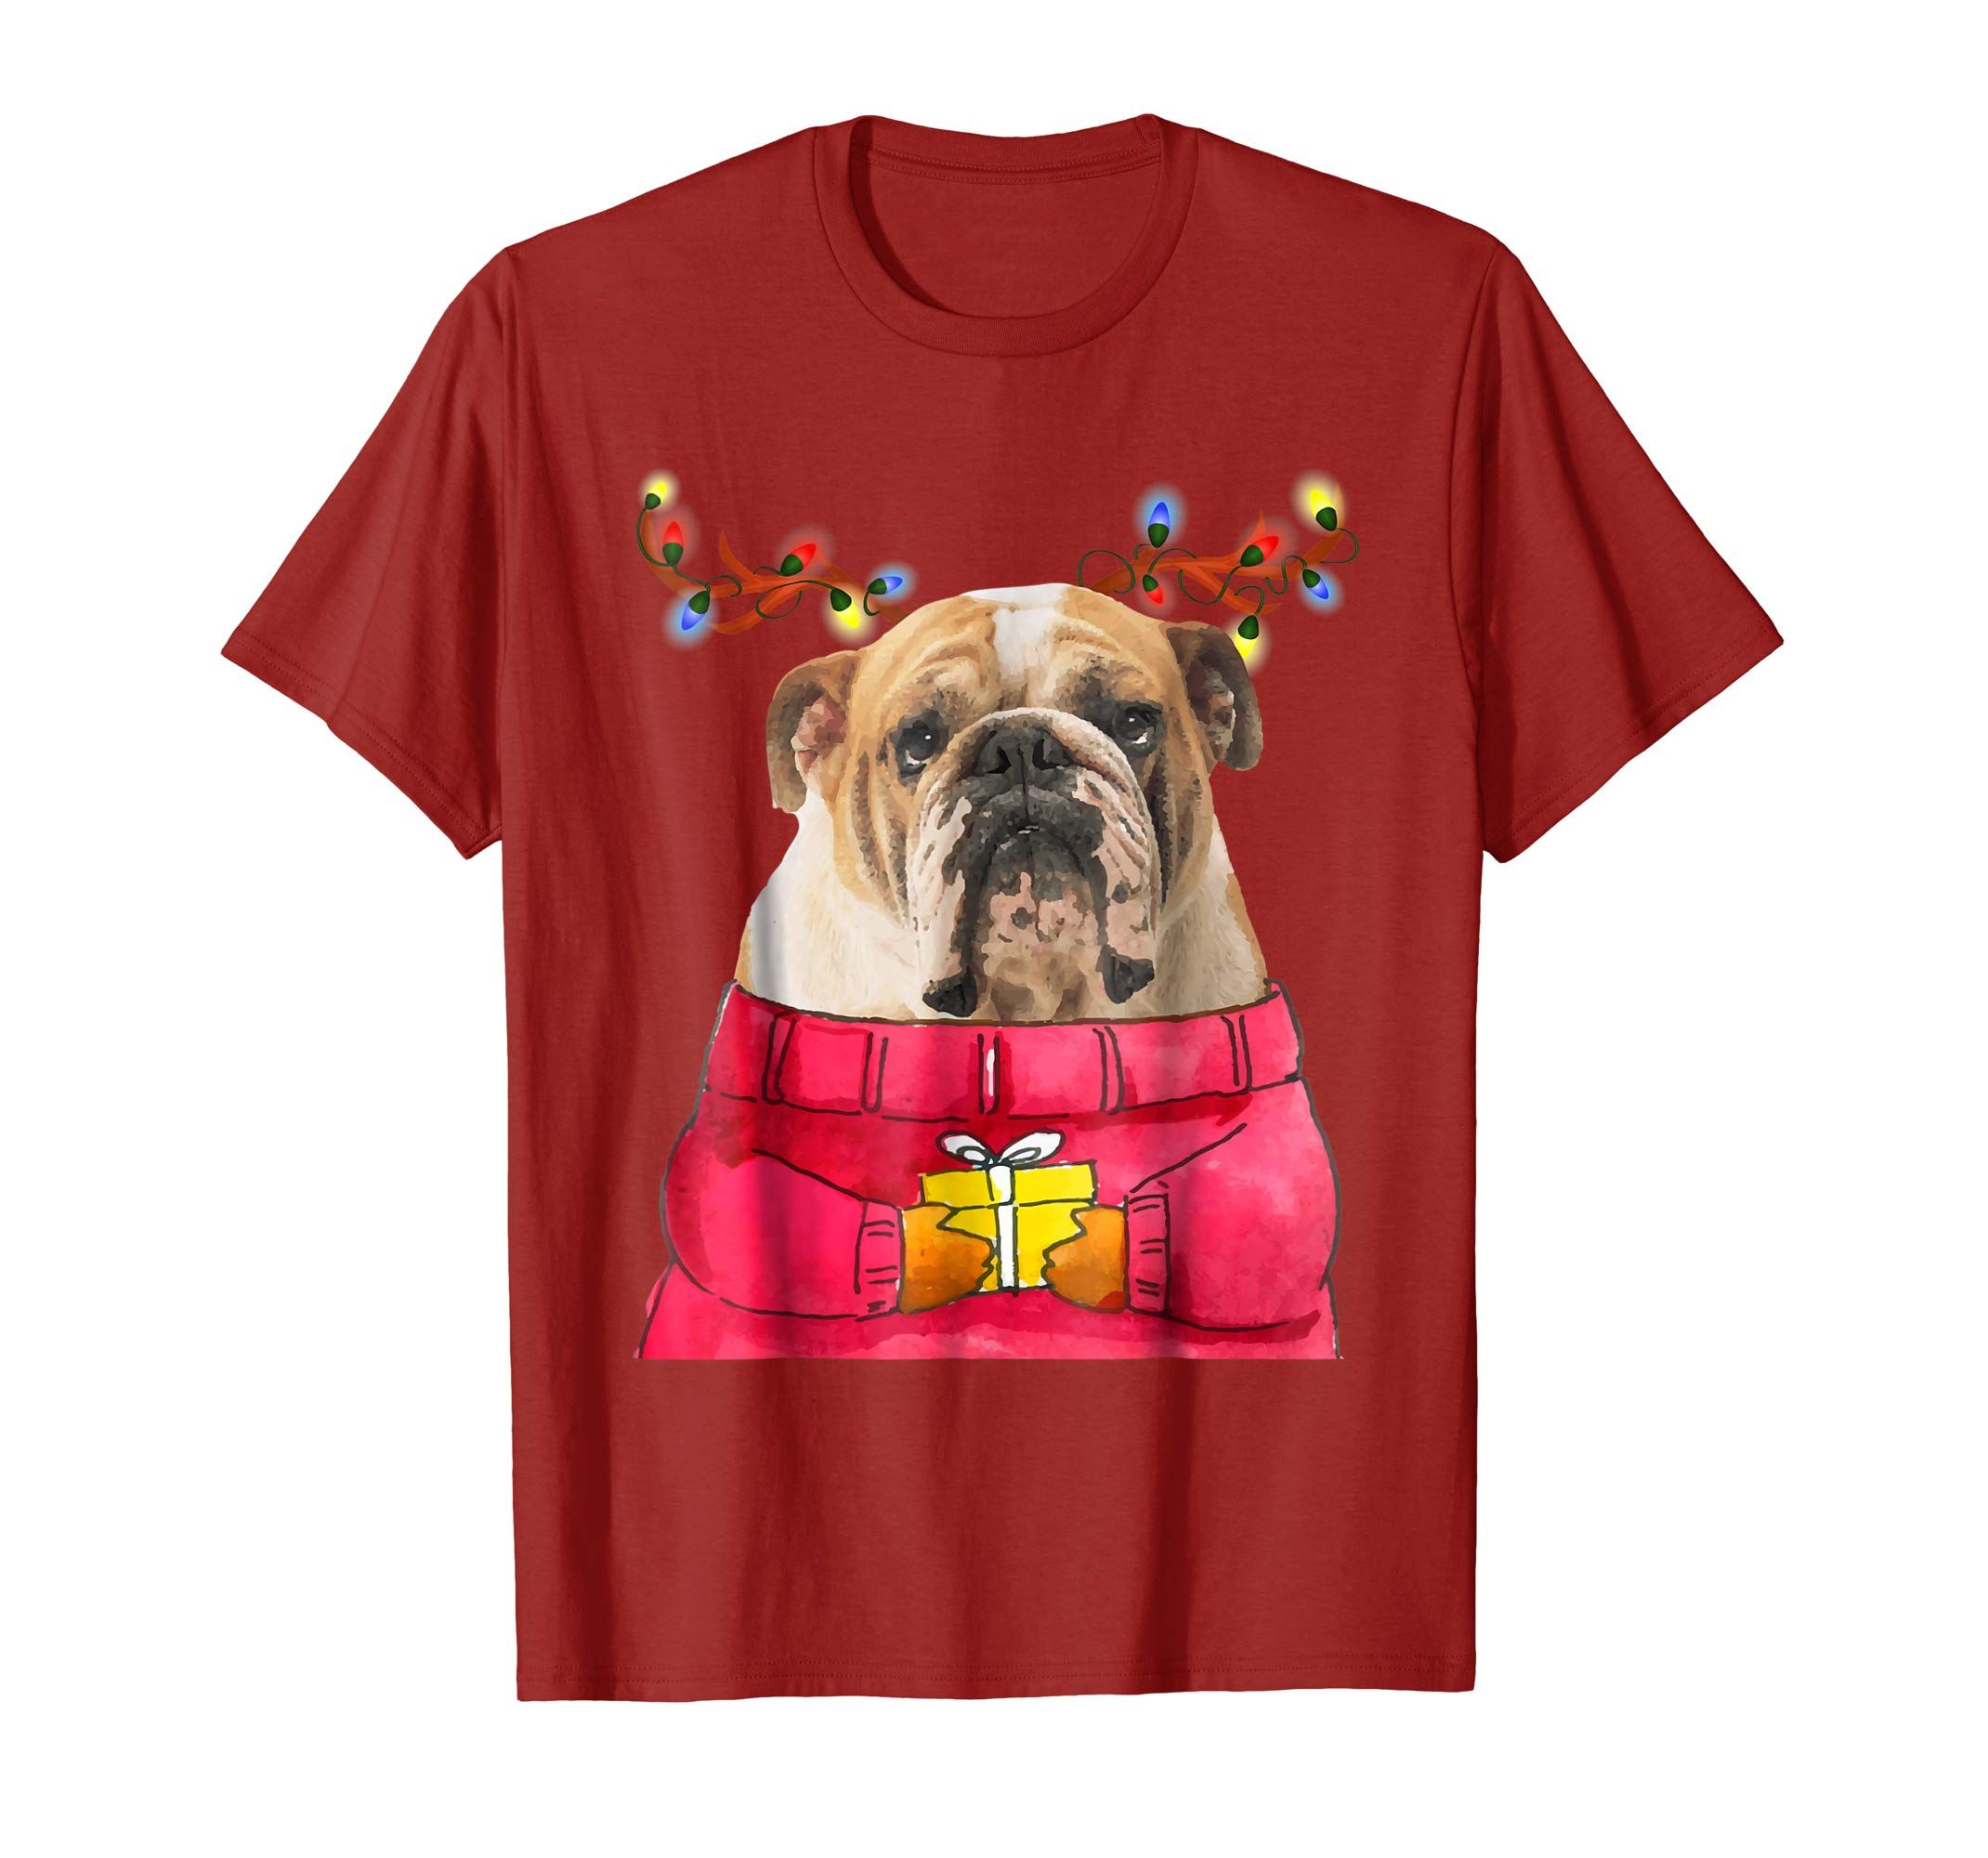 eeb2878ad Cutest Dog Lover Gift Shirt for Xmas! Christmas Dog Gift Bulldog Reindeer Antlers  Xmas Shirt